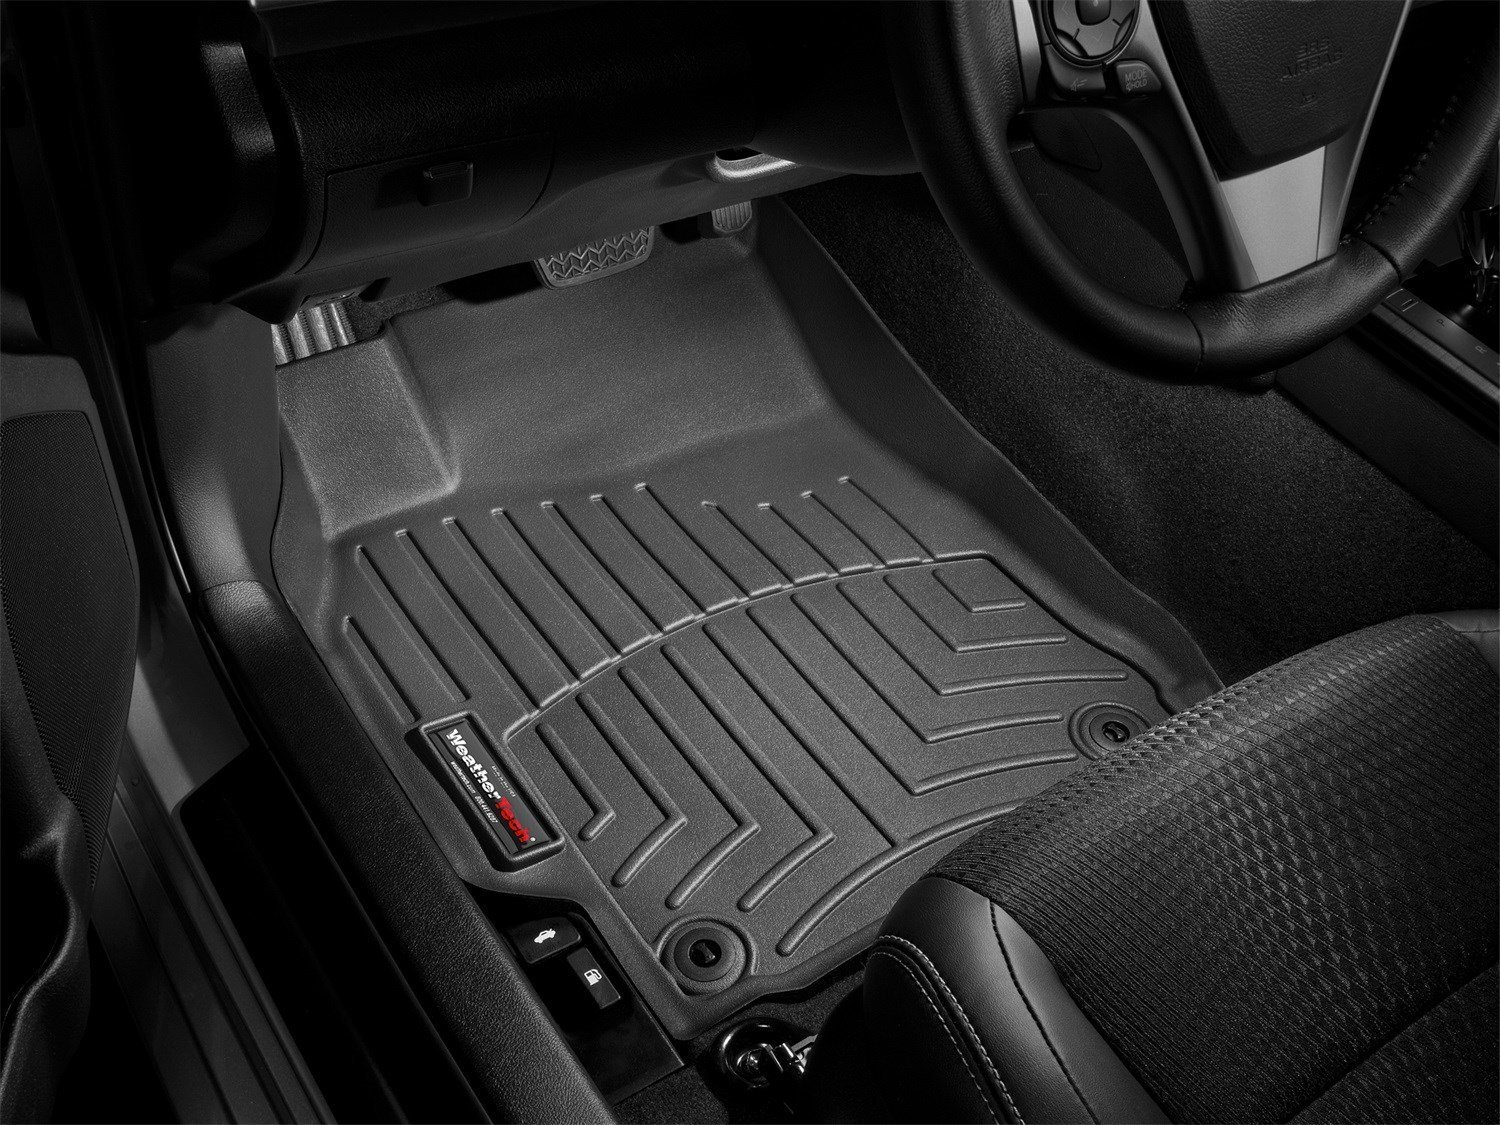 exact choosing designed liners best car husky of match their digitalfit top specifications list measured vs mat and hero product by computer weathertech mats front to right your at for laser are floor the